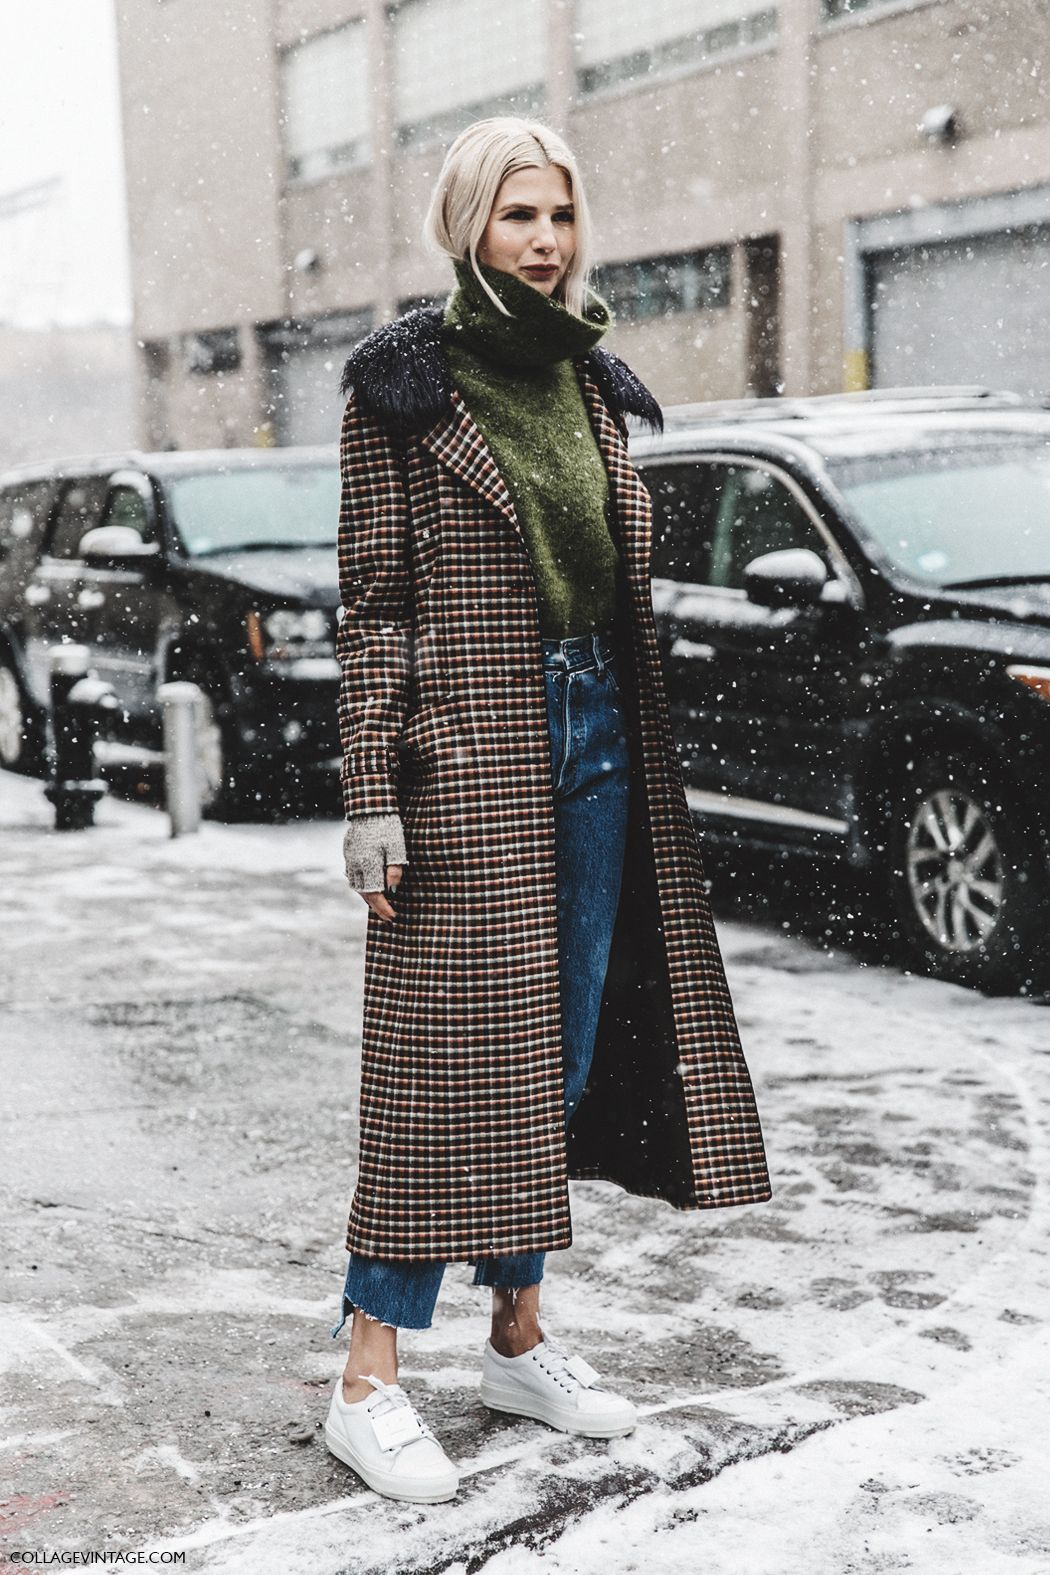 NYFW-New York Fashion Week-Fall Winter-17-Street Style-Checked Coat-Turtleneck-Acne Sneakers-2 0689cb568eb